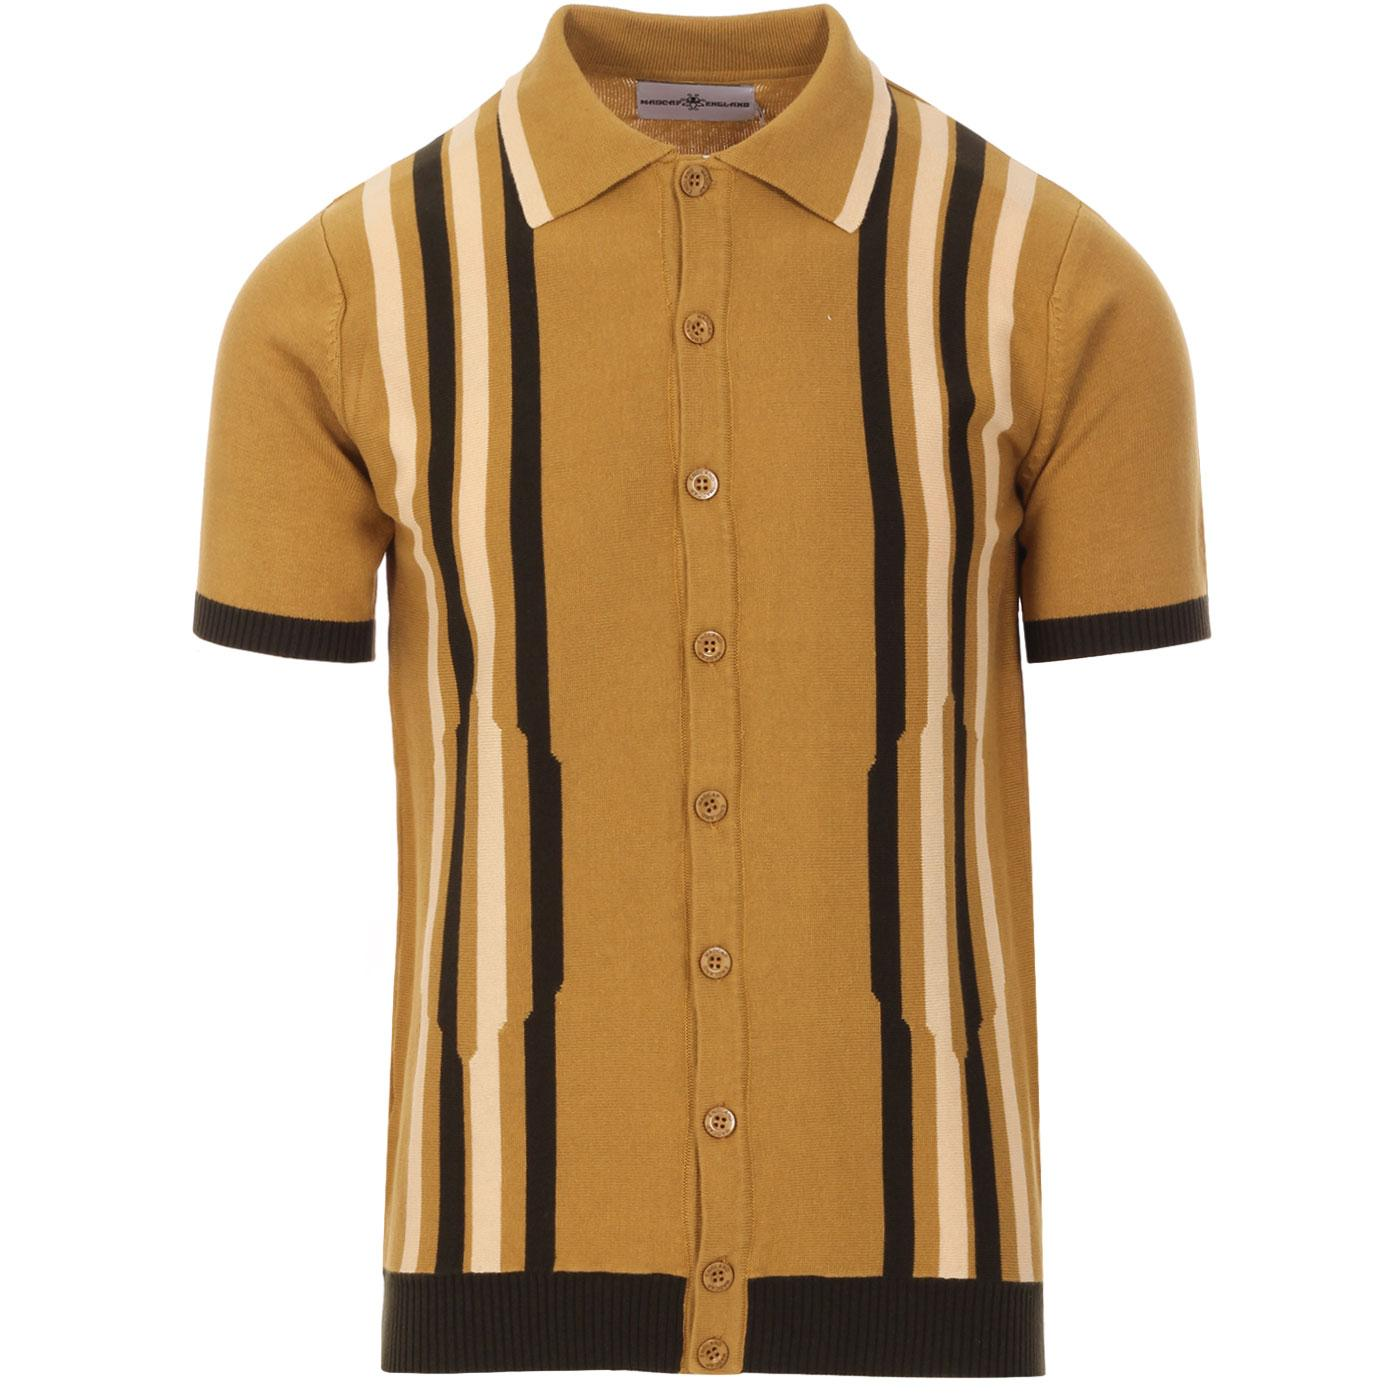 Madcap England Shockwave 60s Mod Abstract Stripe Knitted Polo Top in Bronze Mist